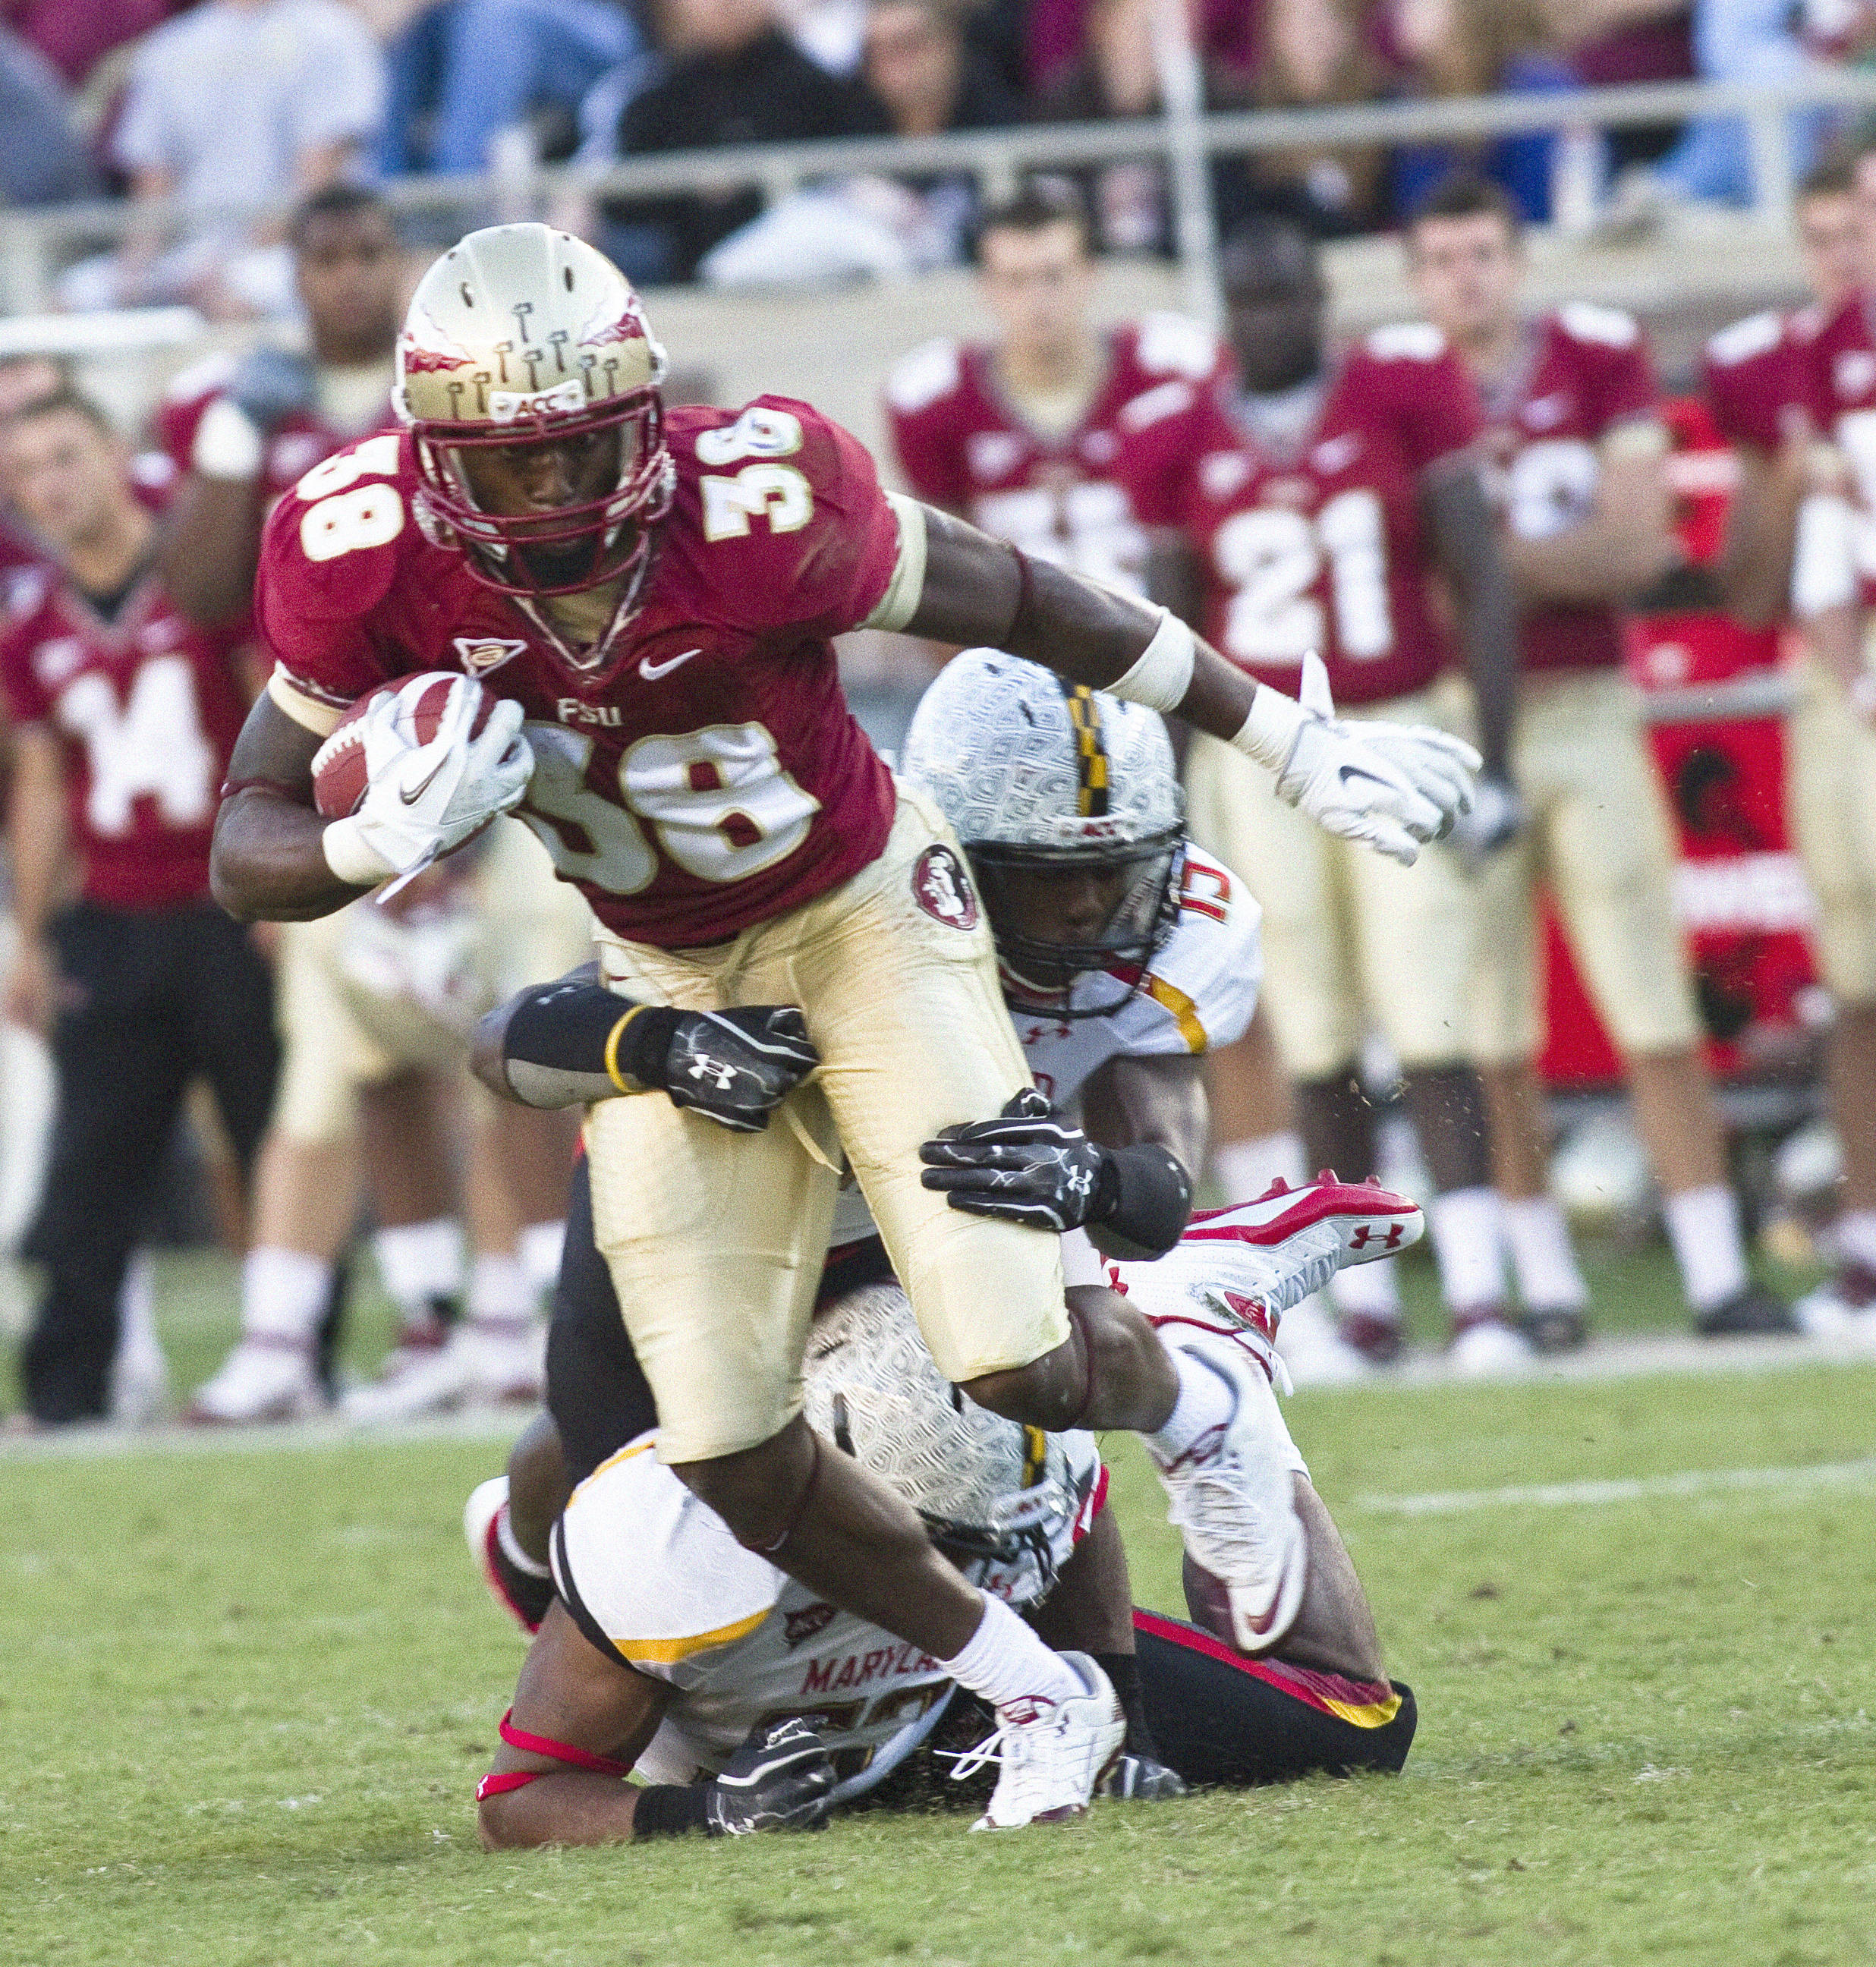 Jermaine Thomas (38) run after a catch. FSU vs Maryland 10/22/1111